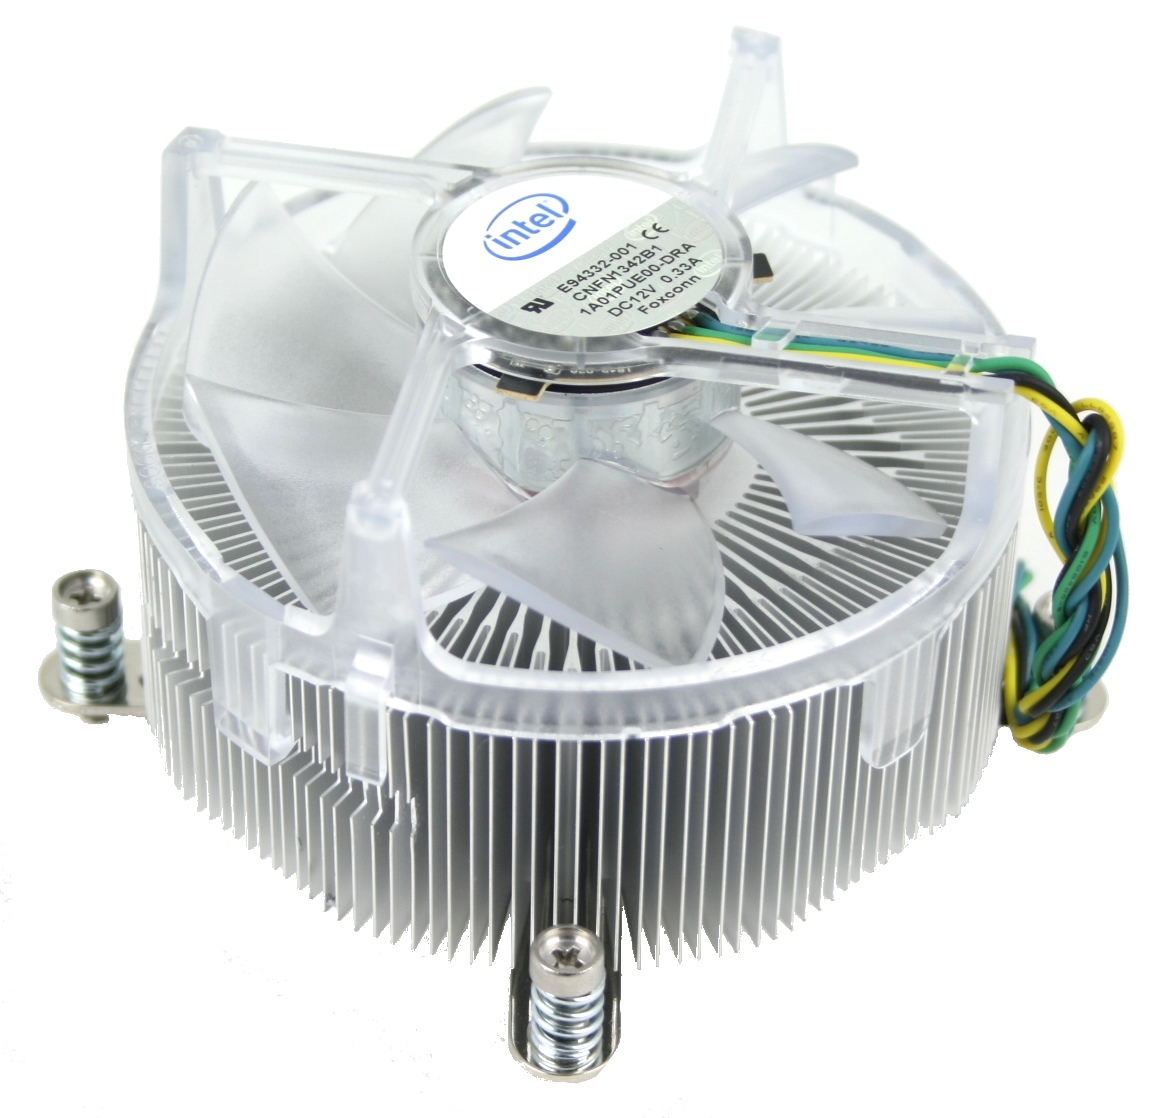 Andraw Valentines Day Present Sealing Unfade Water Cooling Heat Sink Great Workmanship Desktop for Computer Industrial Water Cooling System Heat Sink